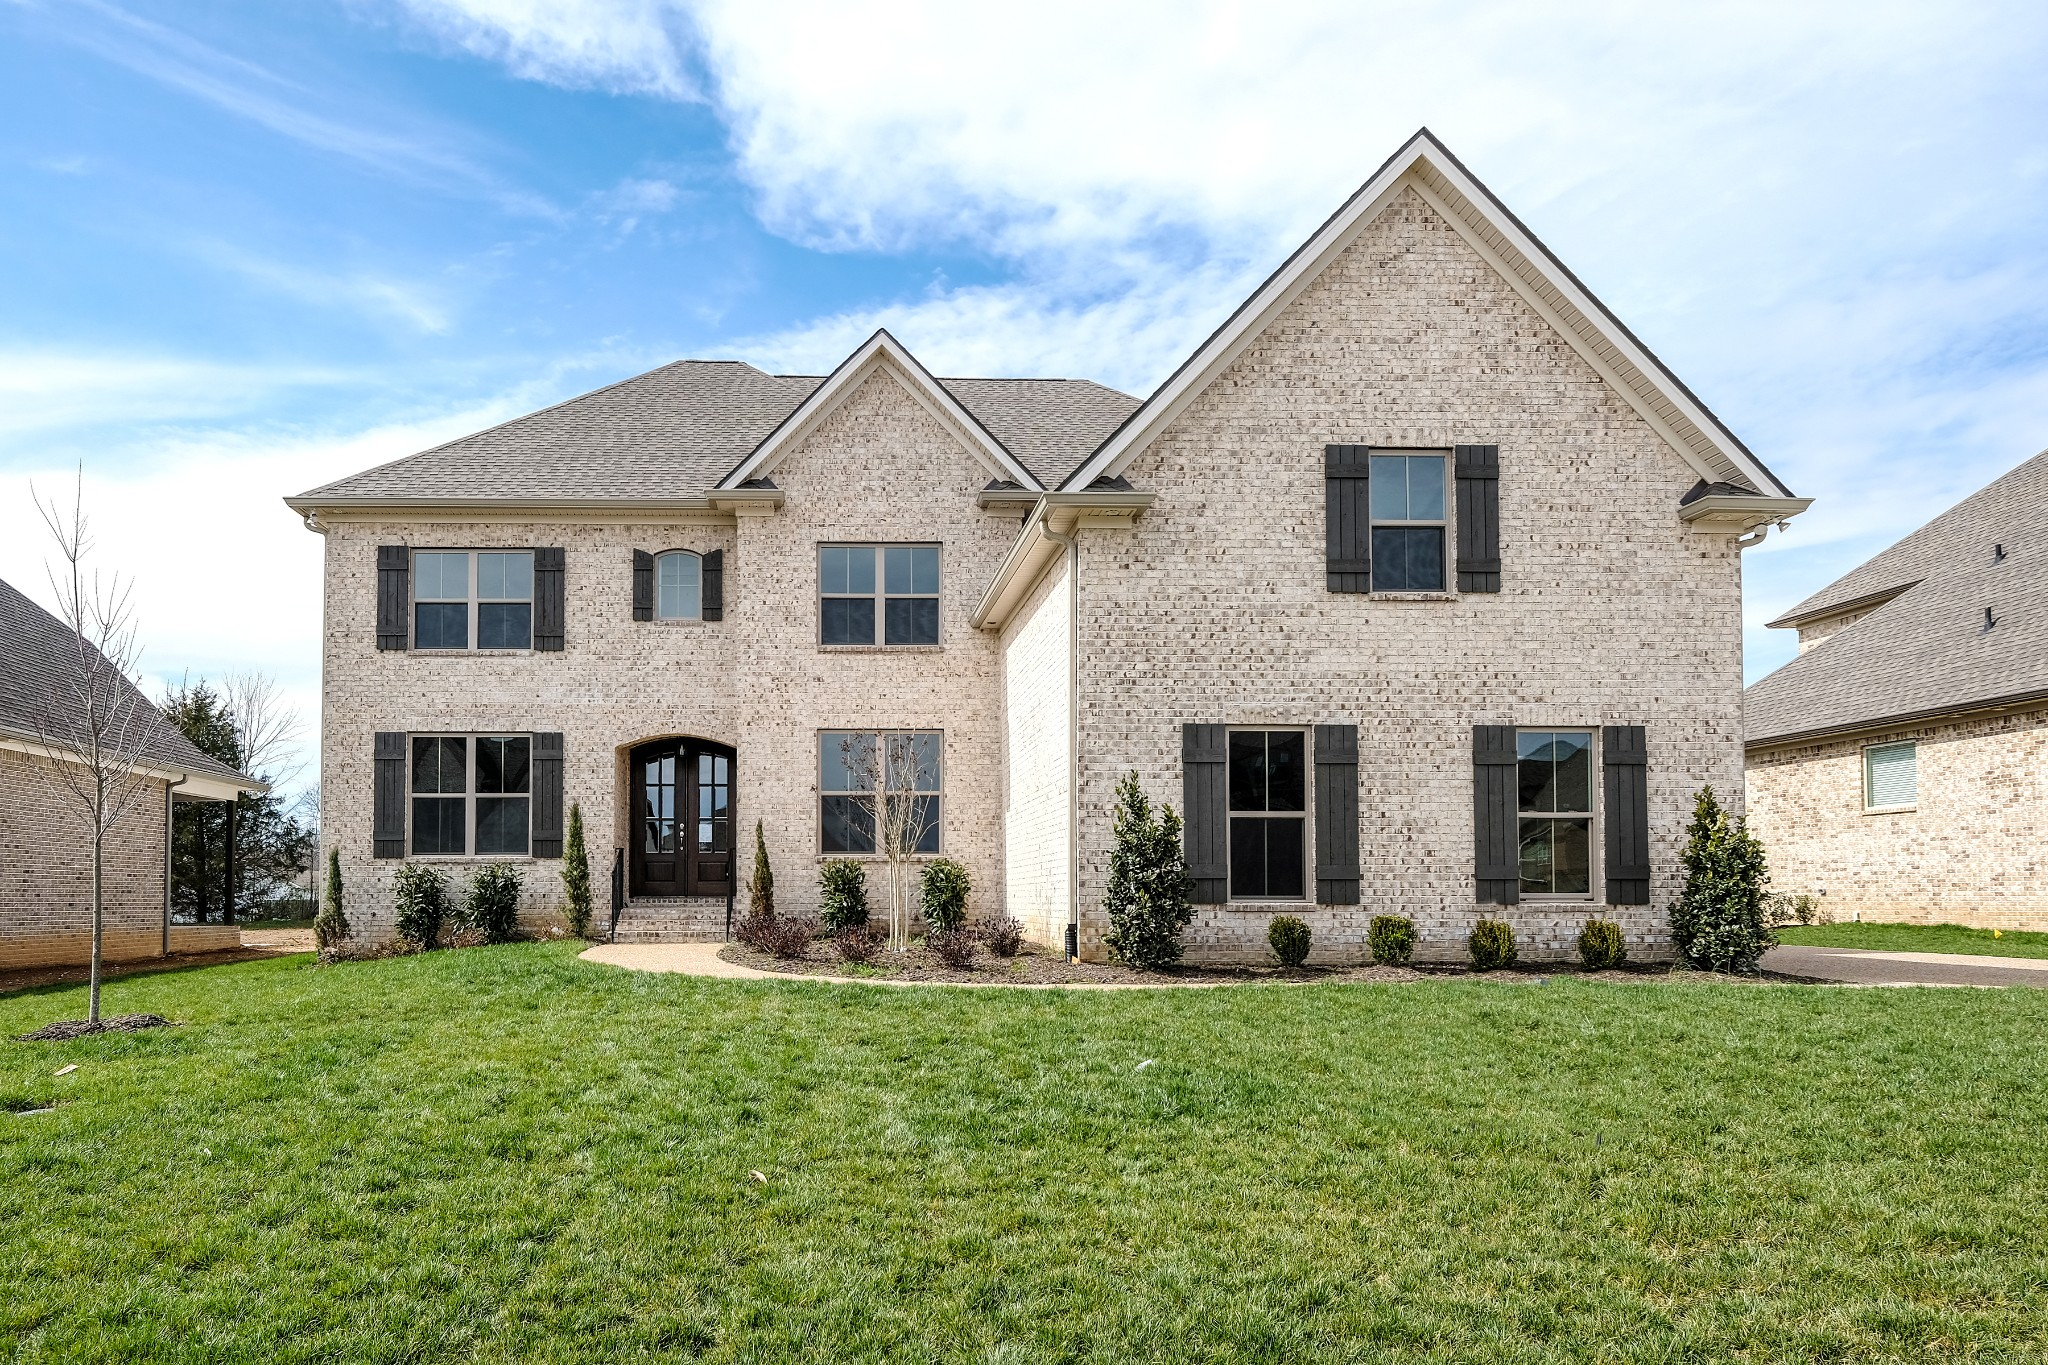 2059 Autumn Ridge Way (Lot 245), Spring Hill, TN 37174 - Spring Hill, TN real estate listing